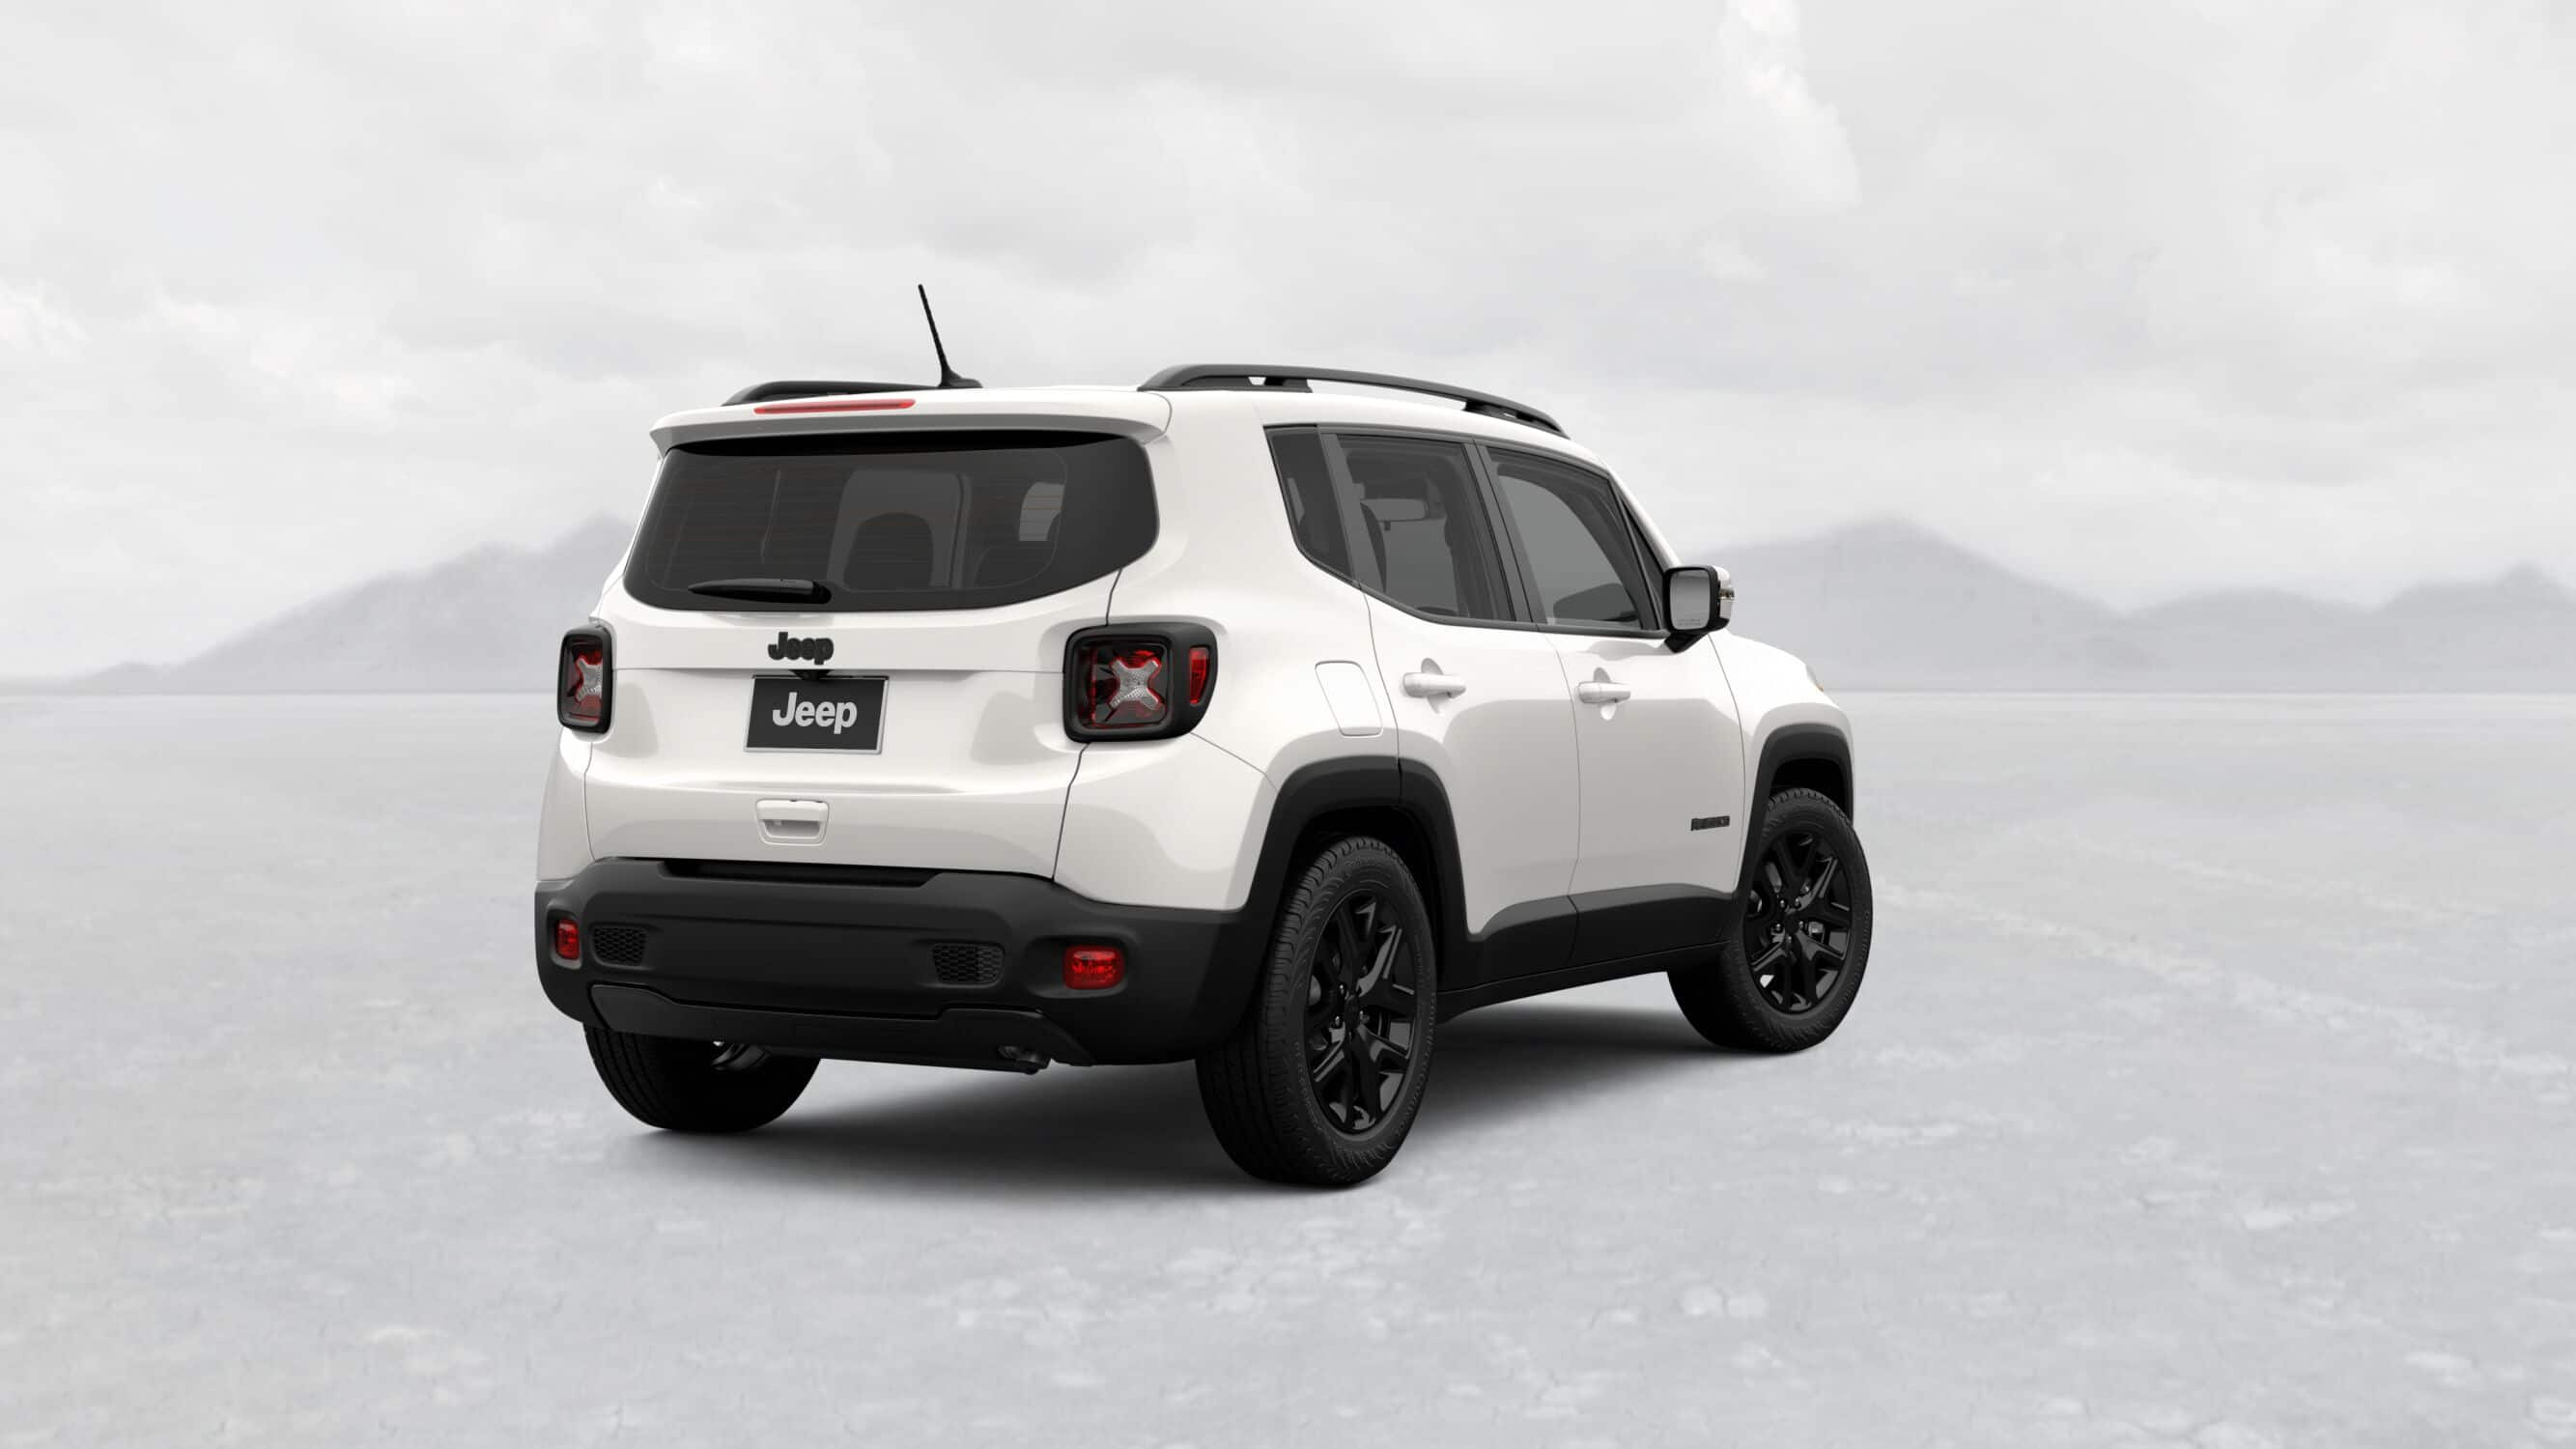 2019 Jeep Renegade Altitude White Exterior Rear Picture